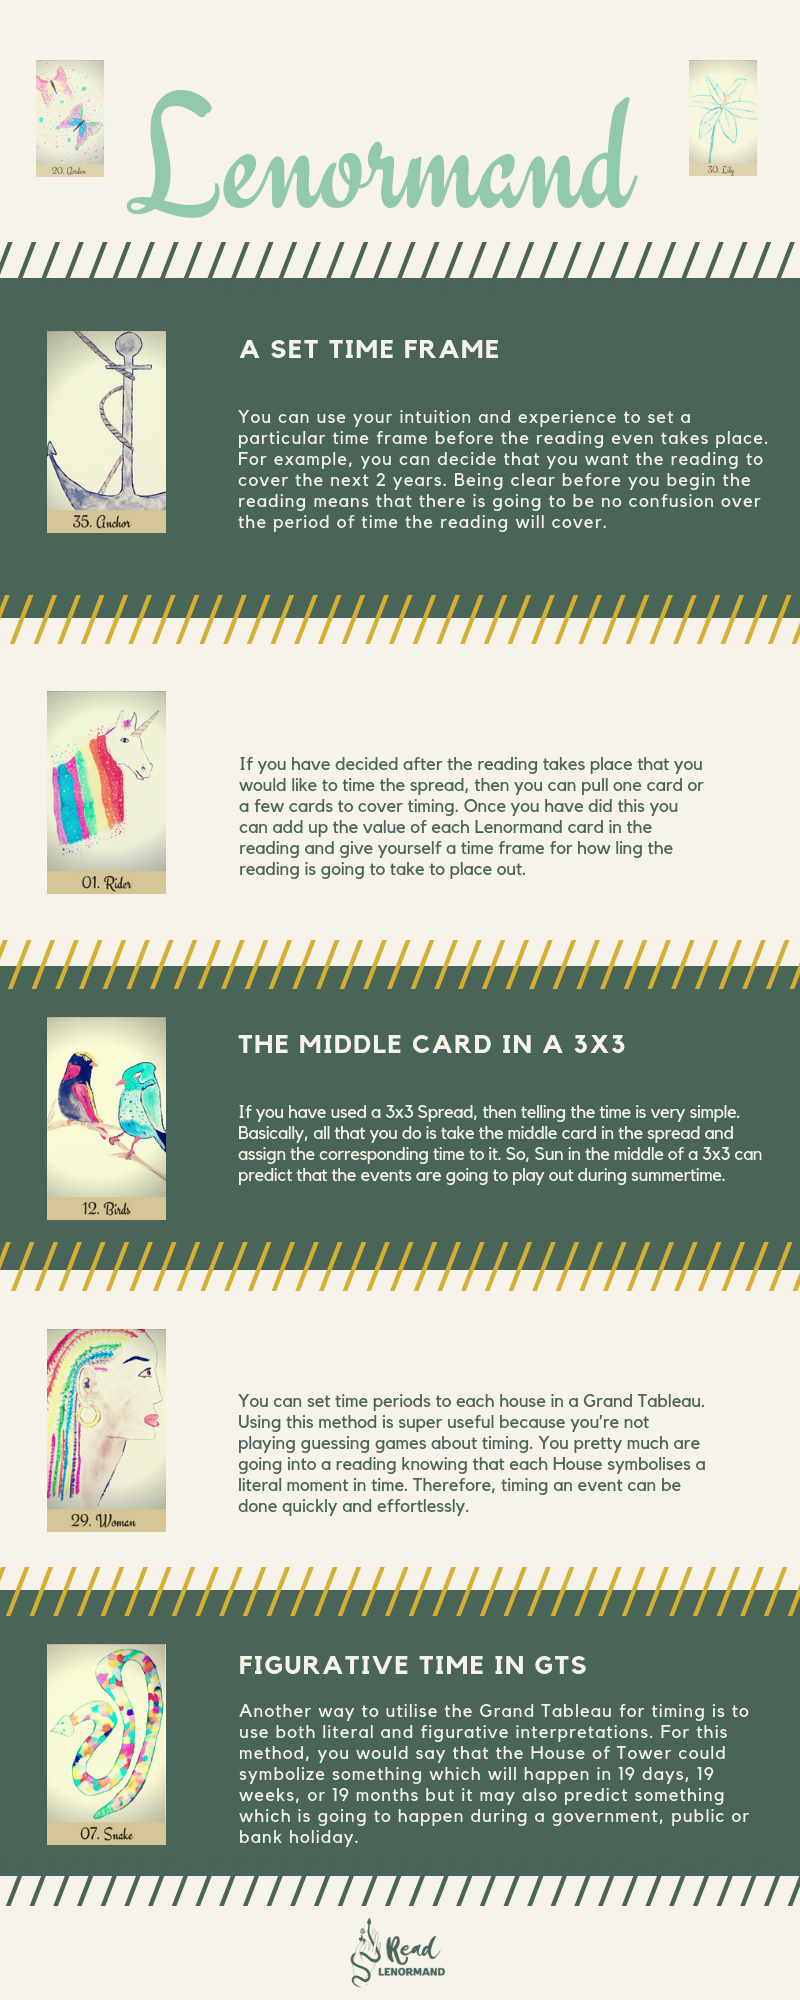 Art Illustration: Five methods for timing with Lenormand cards! These time telling techniques can be used by anyone who is just learning or a beginner with any deck. You can use your intuition and card meanings but also 3x3 spreads, layouts, strings and grand tableau to predict when something is going to happen. Post includes free printable combinations PDF cheat sheets.